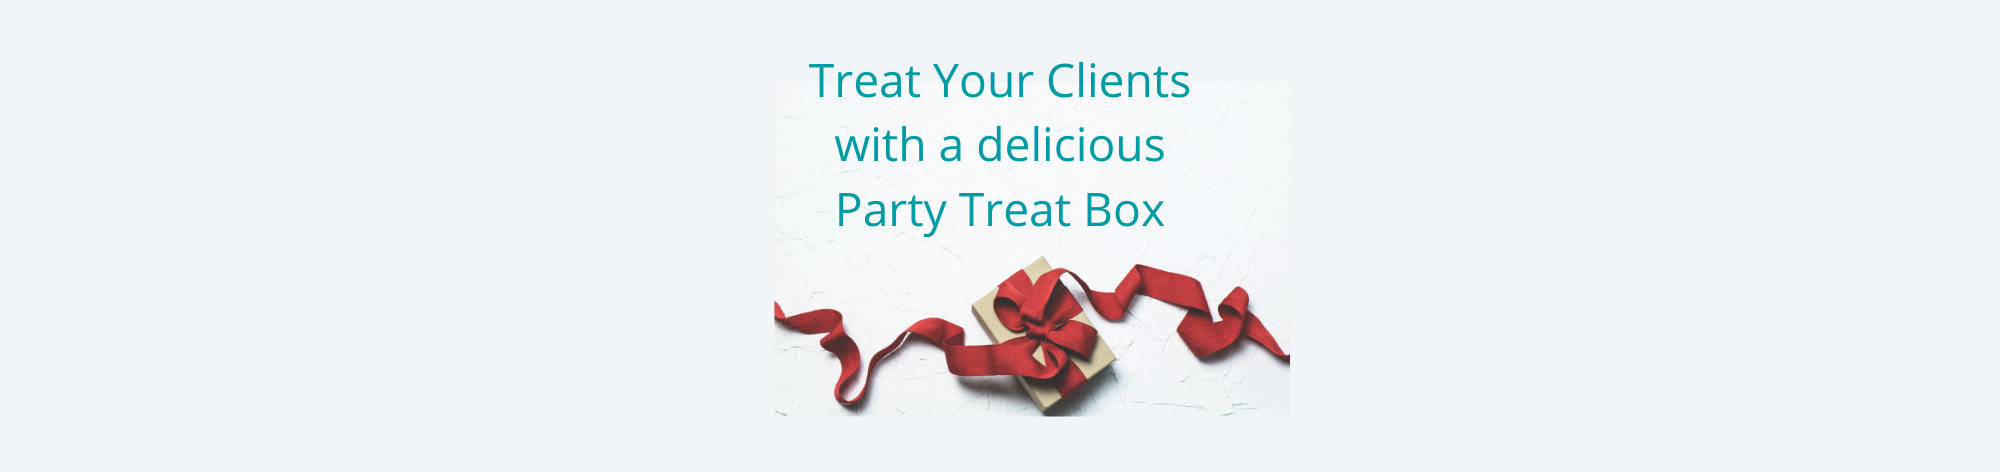 Party treat box